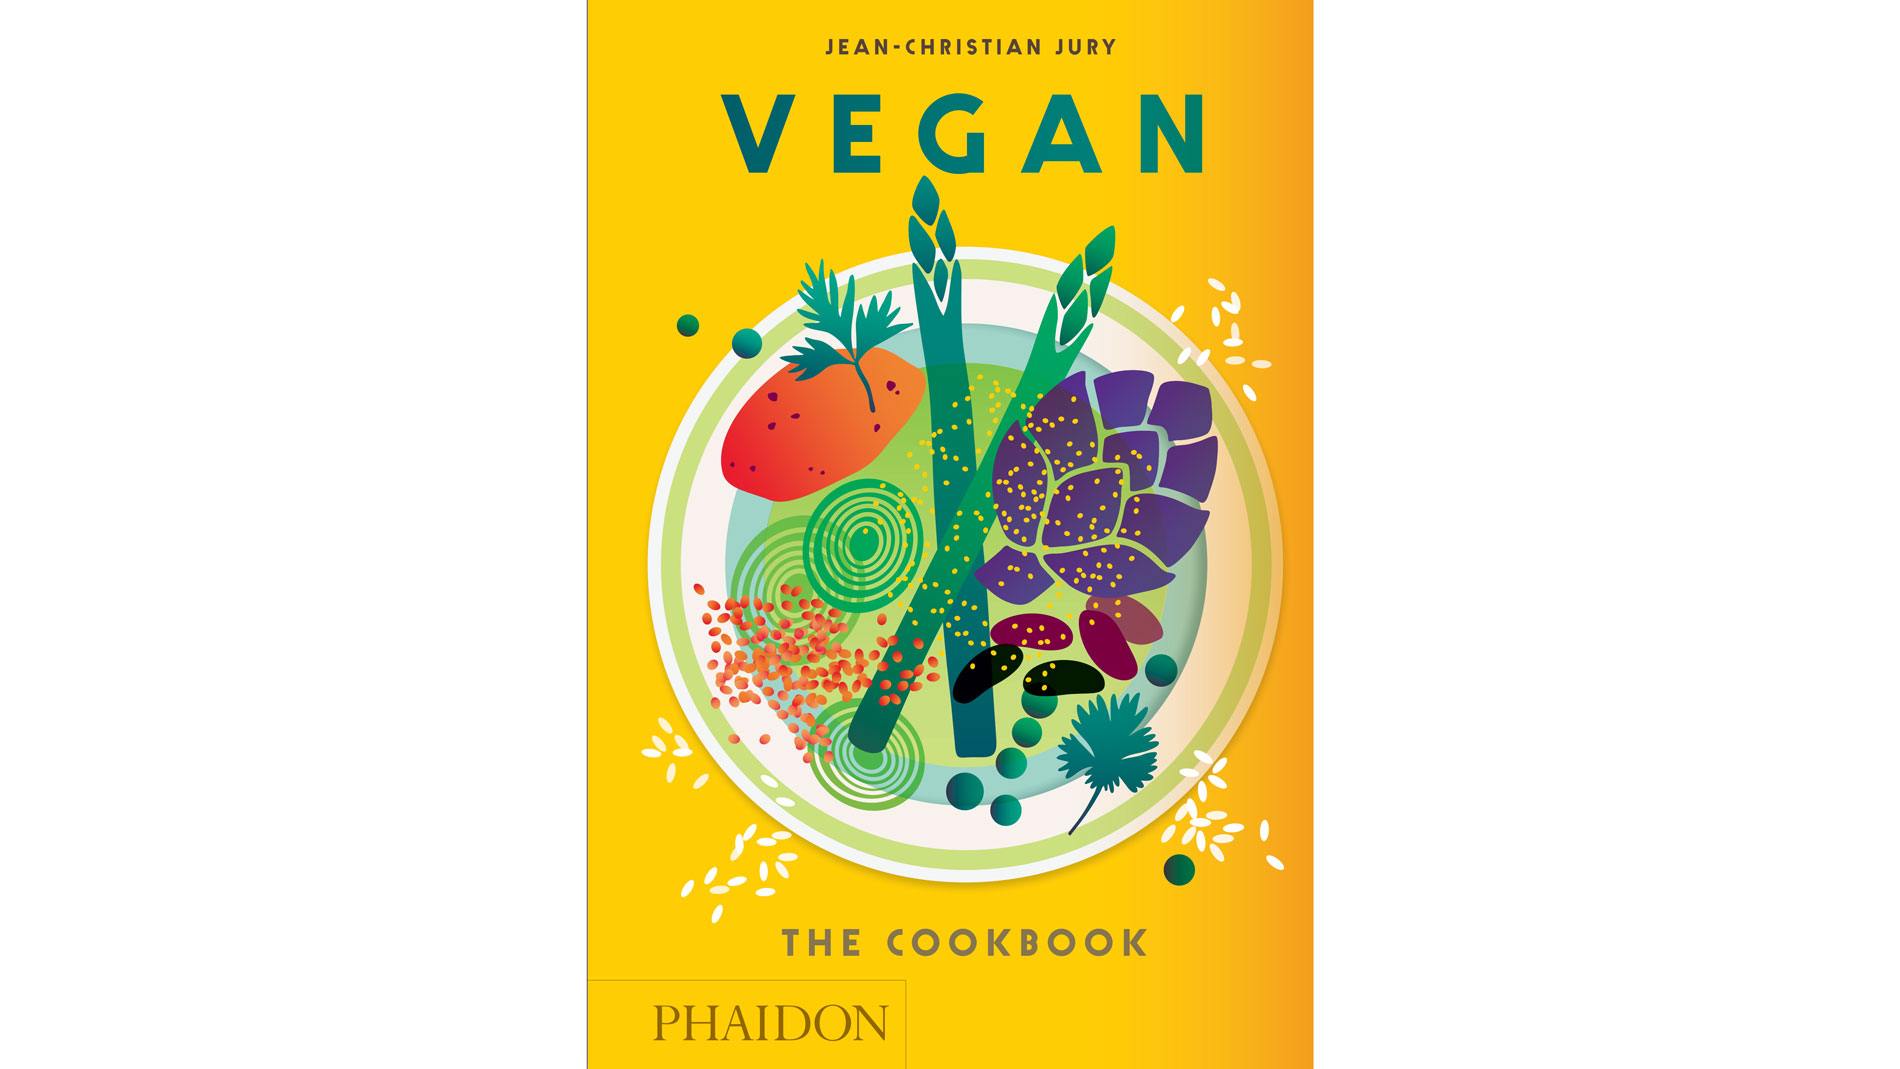 Vegan The Cookbook